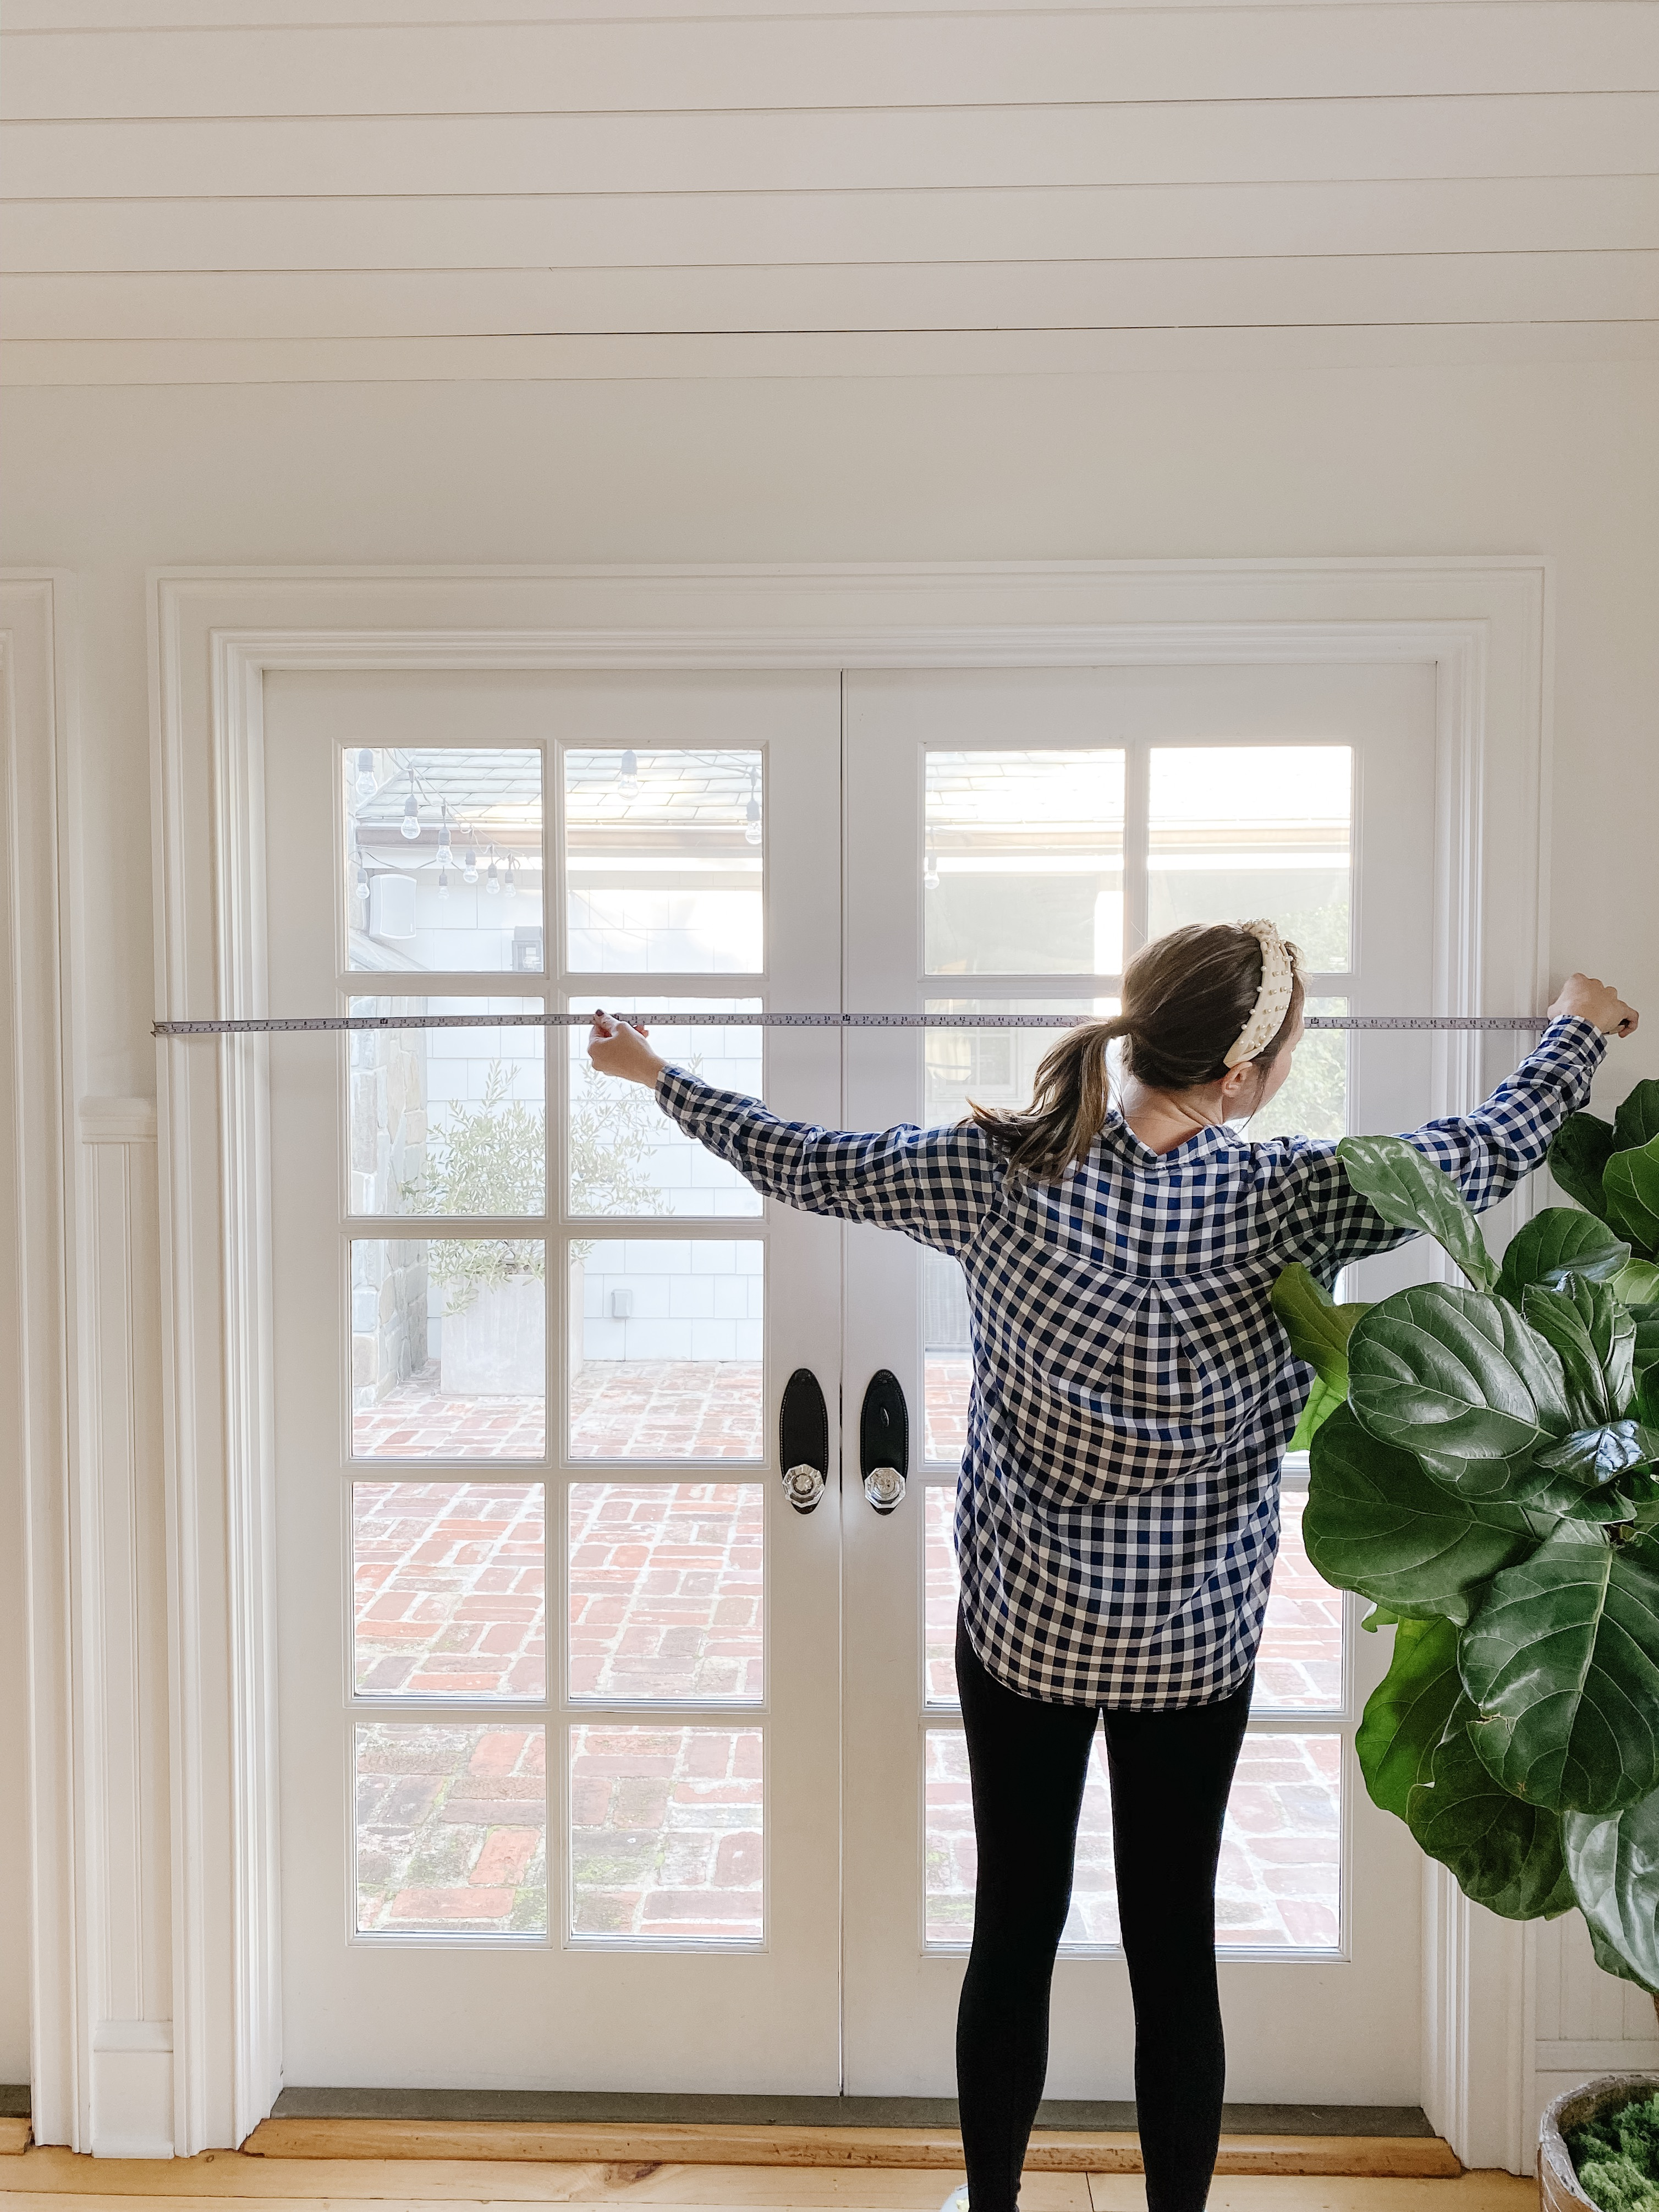 Everhem design professional demonstrates how to measure windows width for drapery